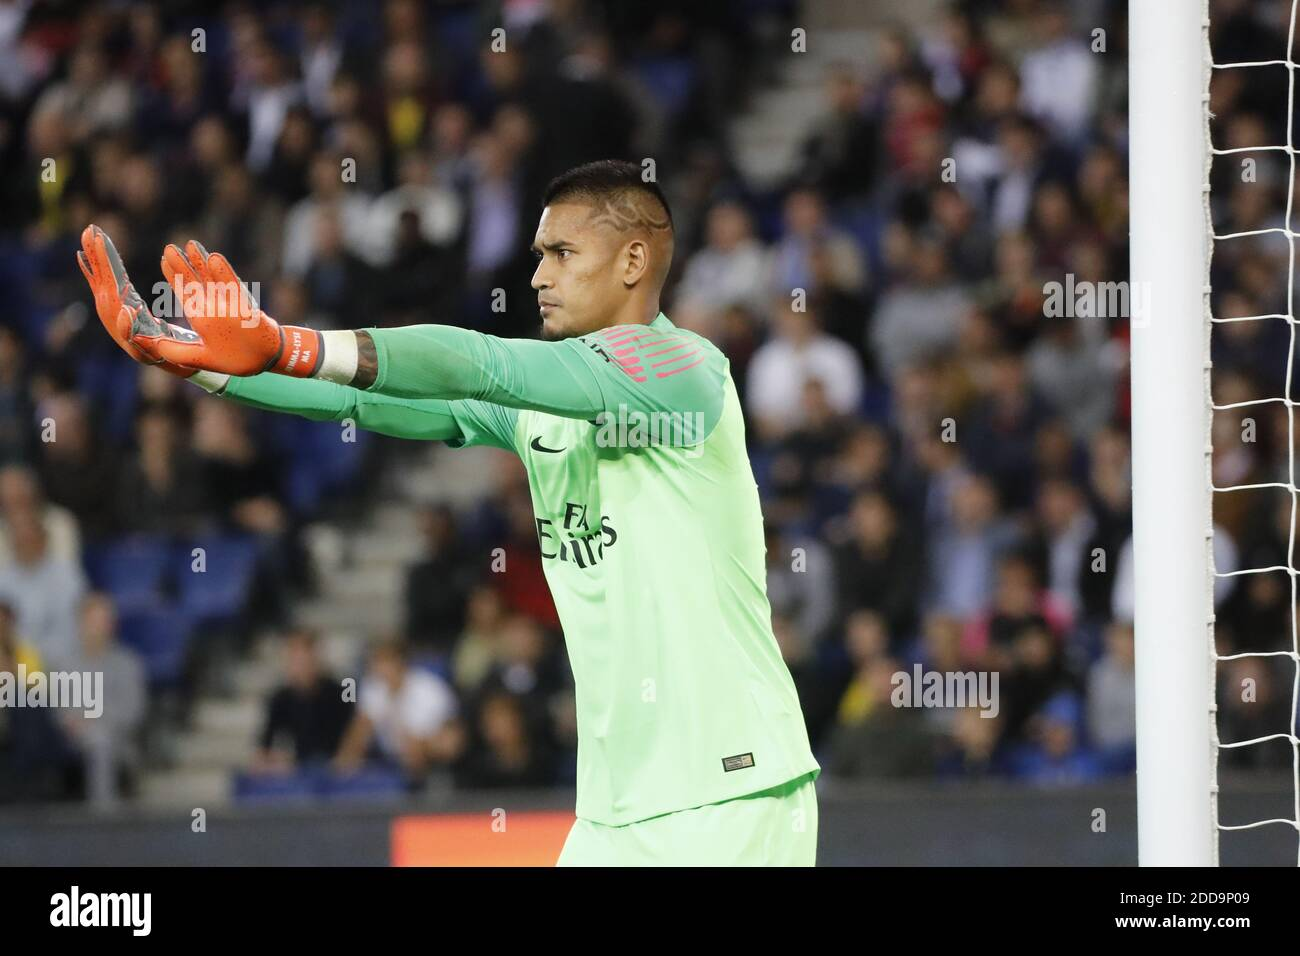 Page 5 - Alphonse Areola High Resolution Stock Photography and ...